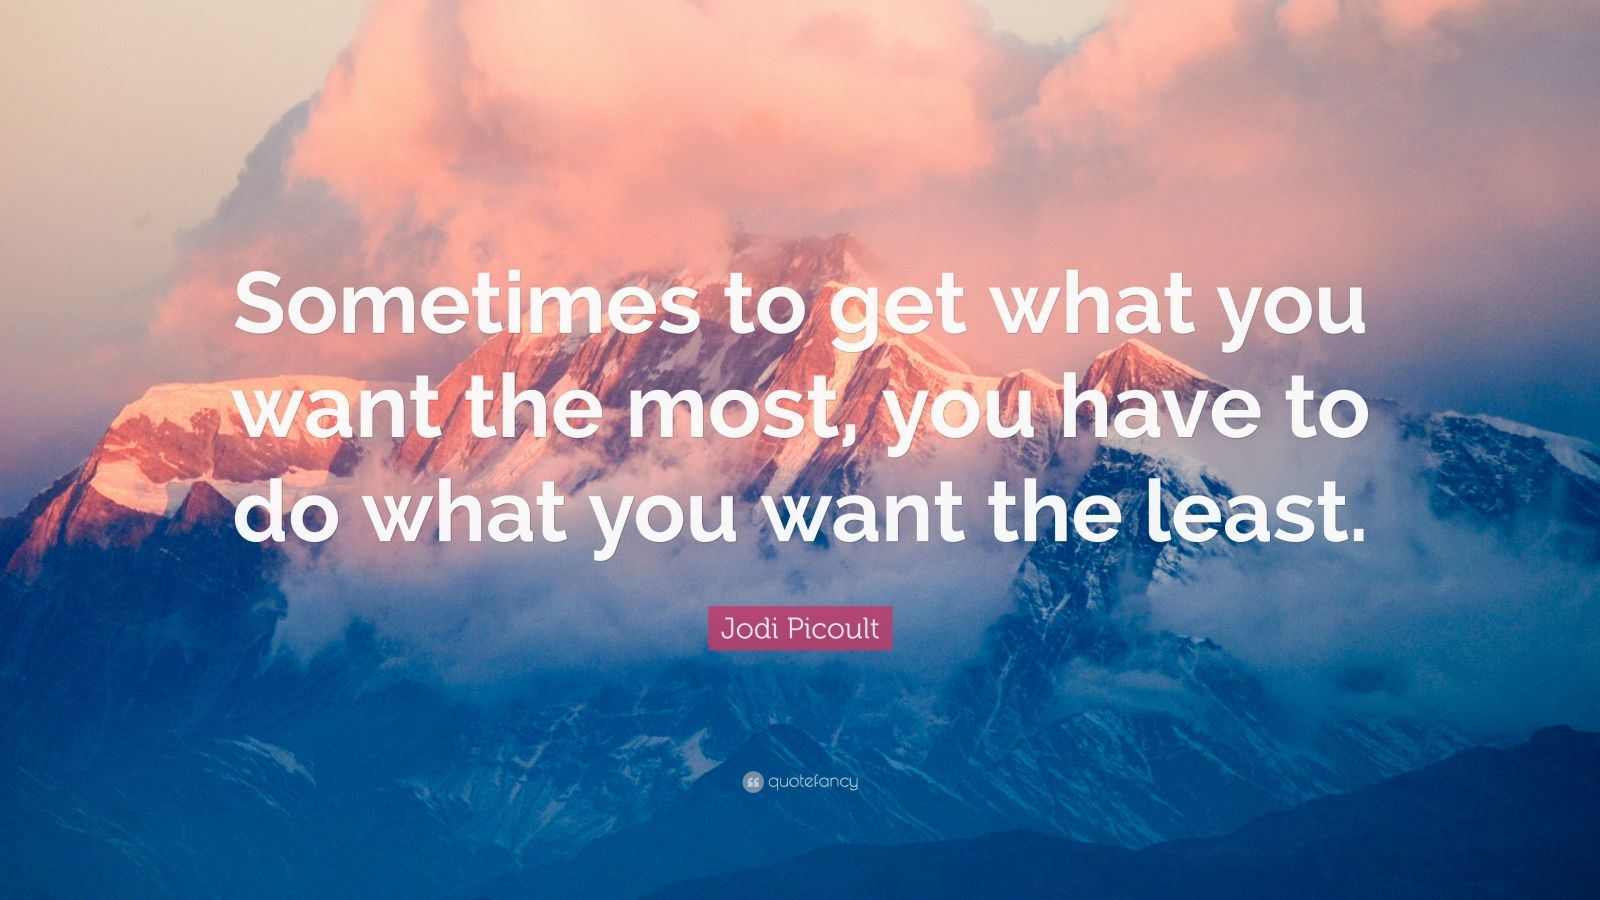 """Jodi Picoult Quote: """"Sometimes to get what you want the most, you have to do what you want the least."""""""